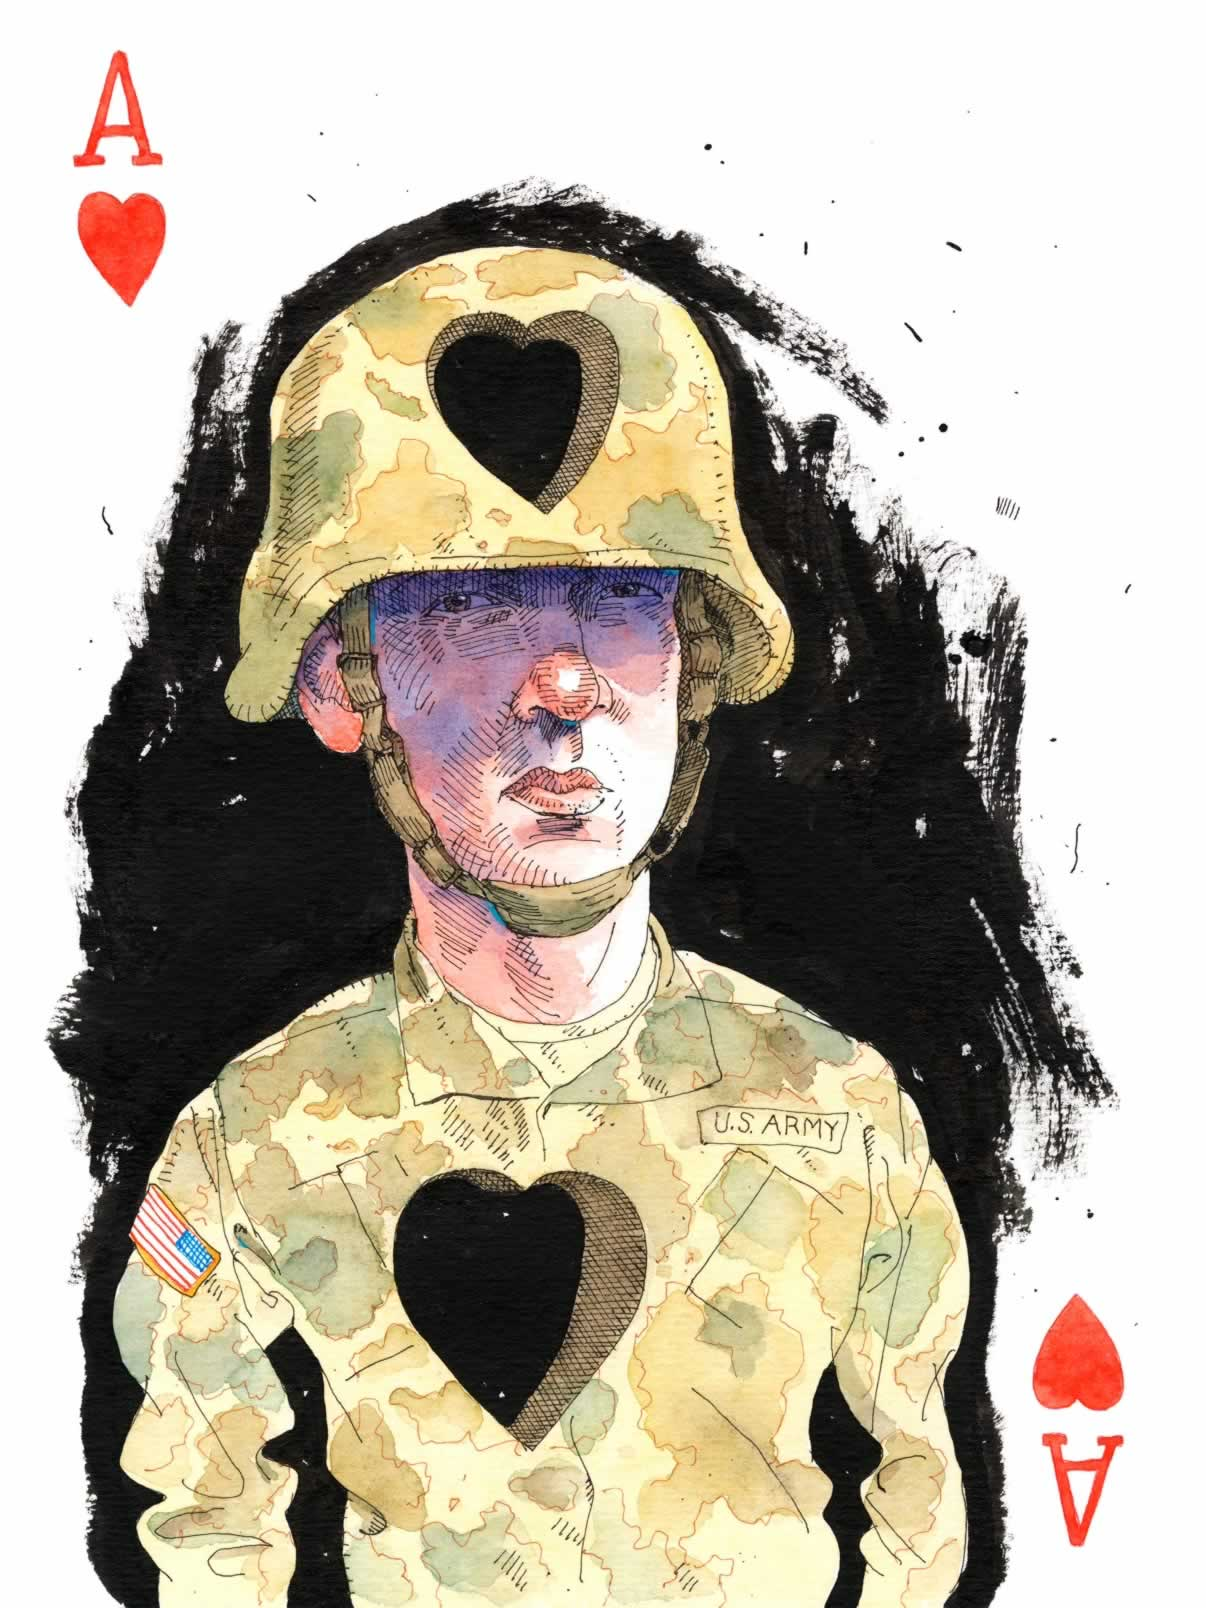 """Playing card """"Ace of Hearts""""from  52 Reasons to Love a Vet illustrated by Joe Ciardiello"""